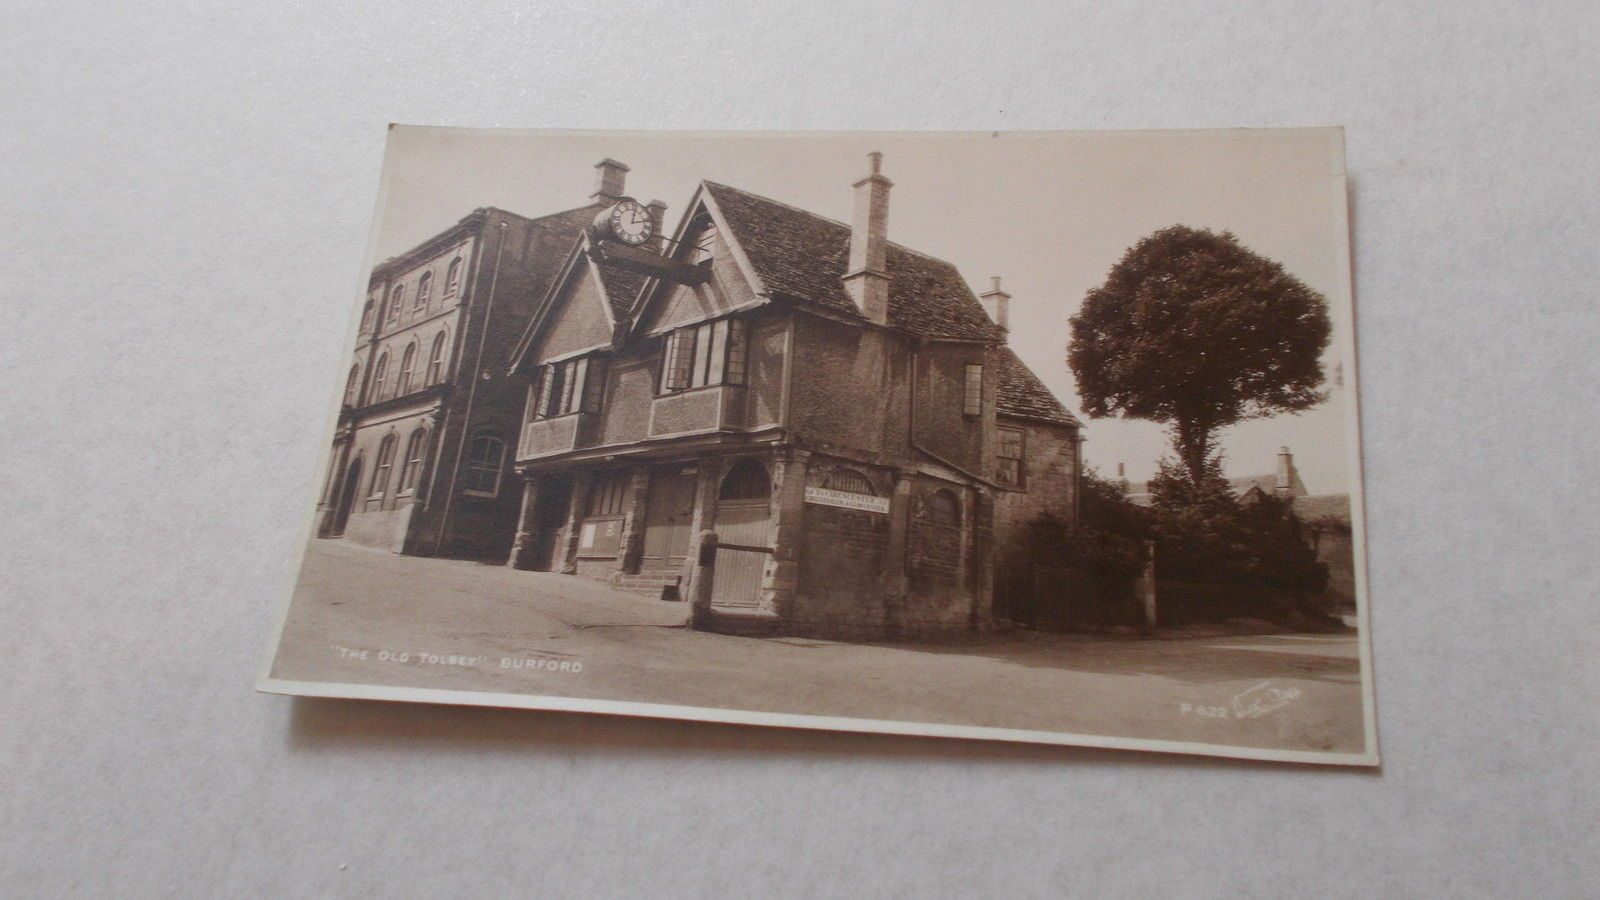 old postcard the old tolsey burford | ebay | oxfordshire views